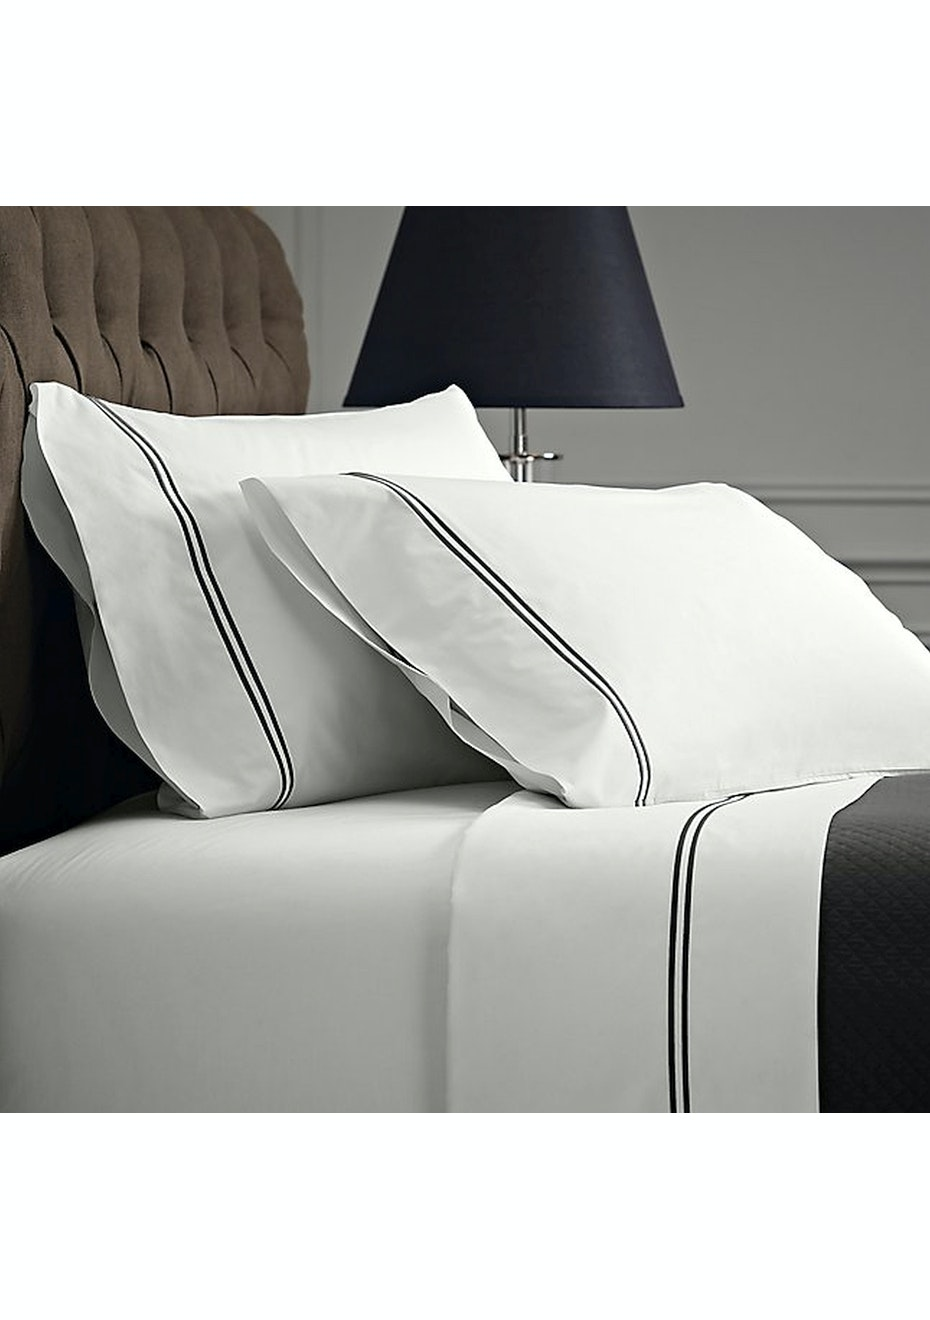 Style & Co 1000 Thread count Egyptian Cotton Hotel Collection Sorrento Sheet sets Double White